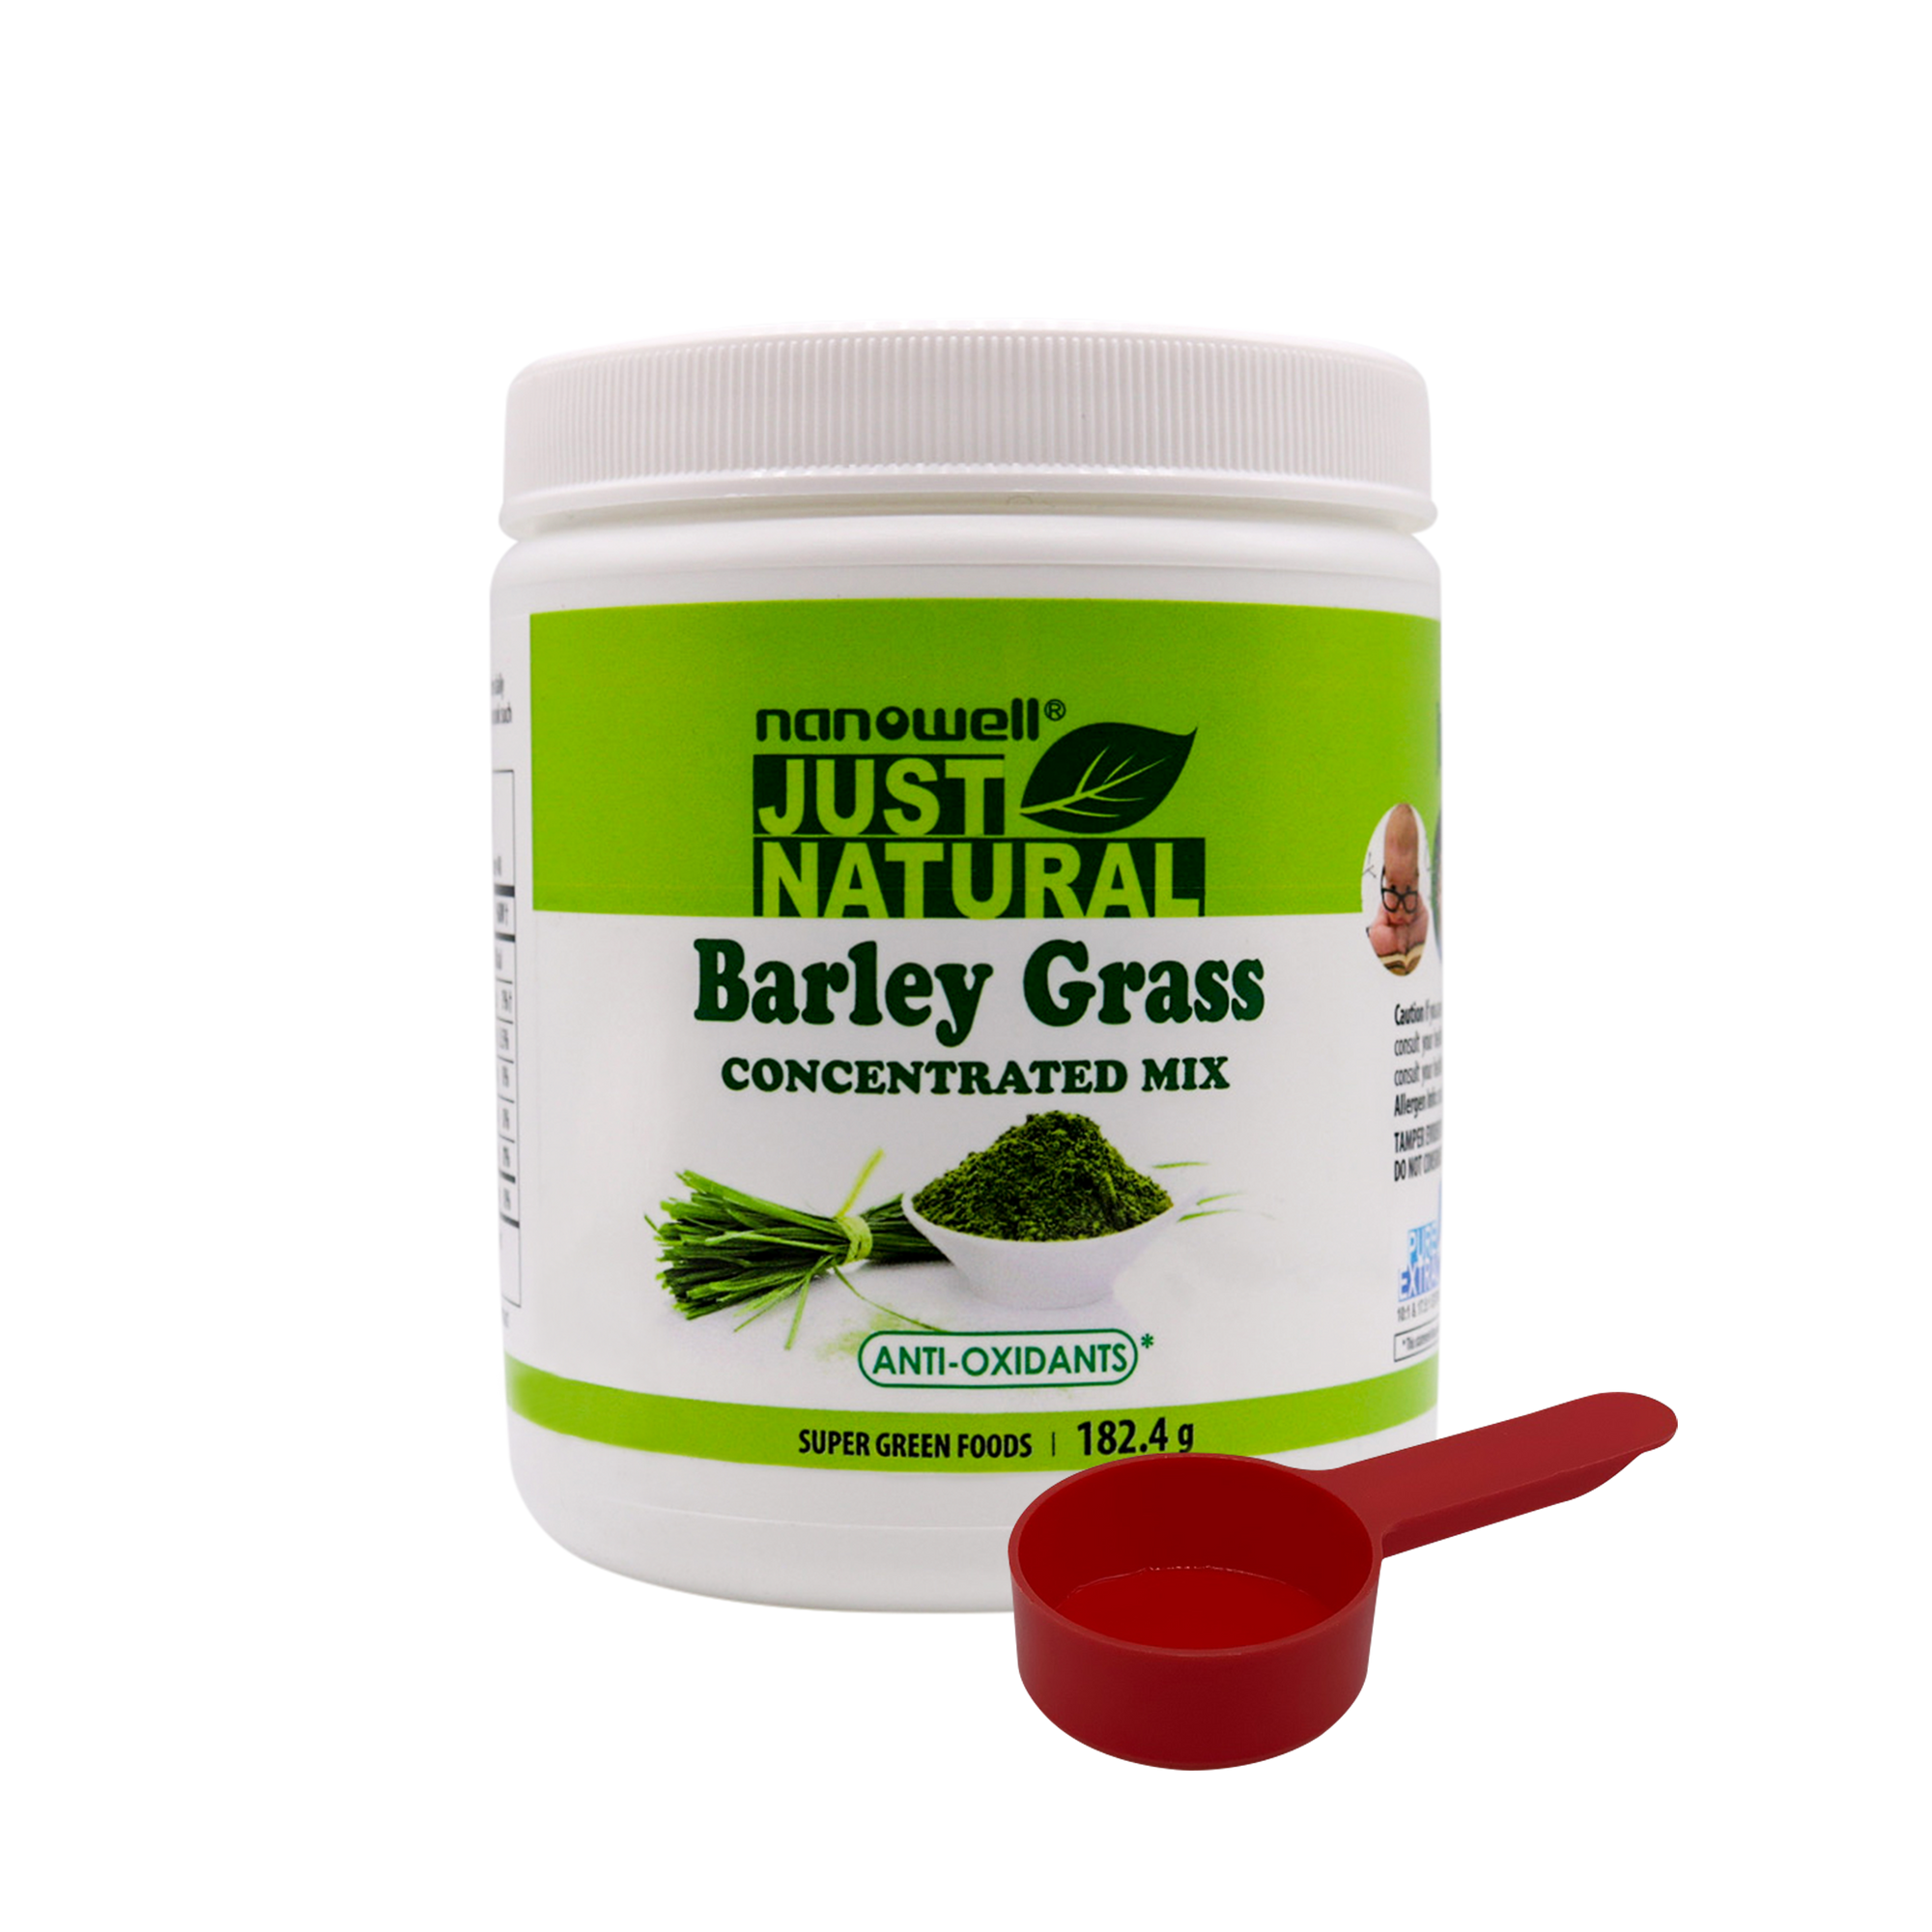 5 Jars of Barley Grass Concentrated Mix Powder